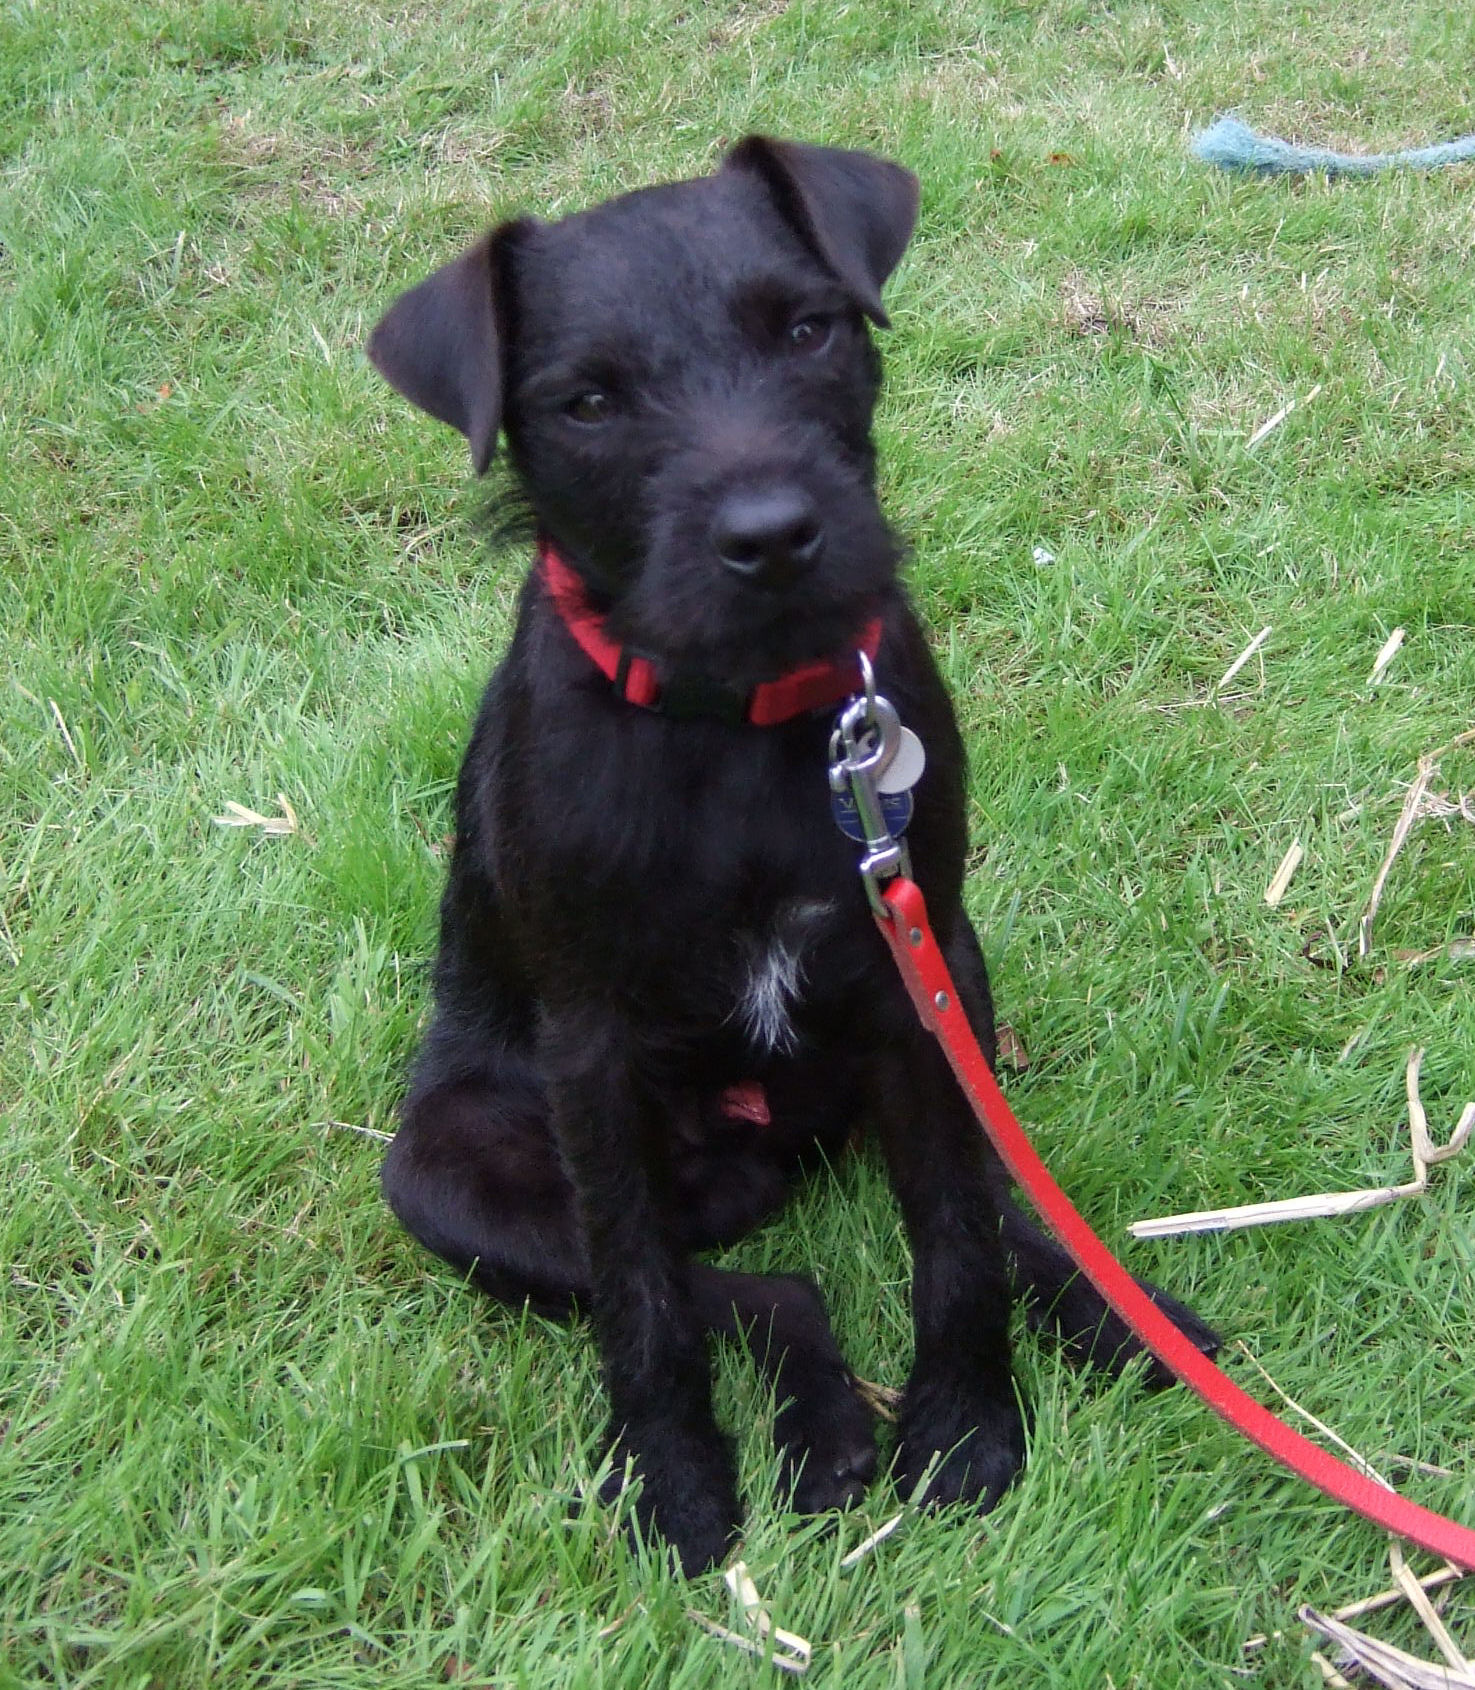 Patterdale Terrier Dog Breed - Pictures, Information, Temperament ...